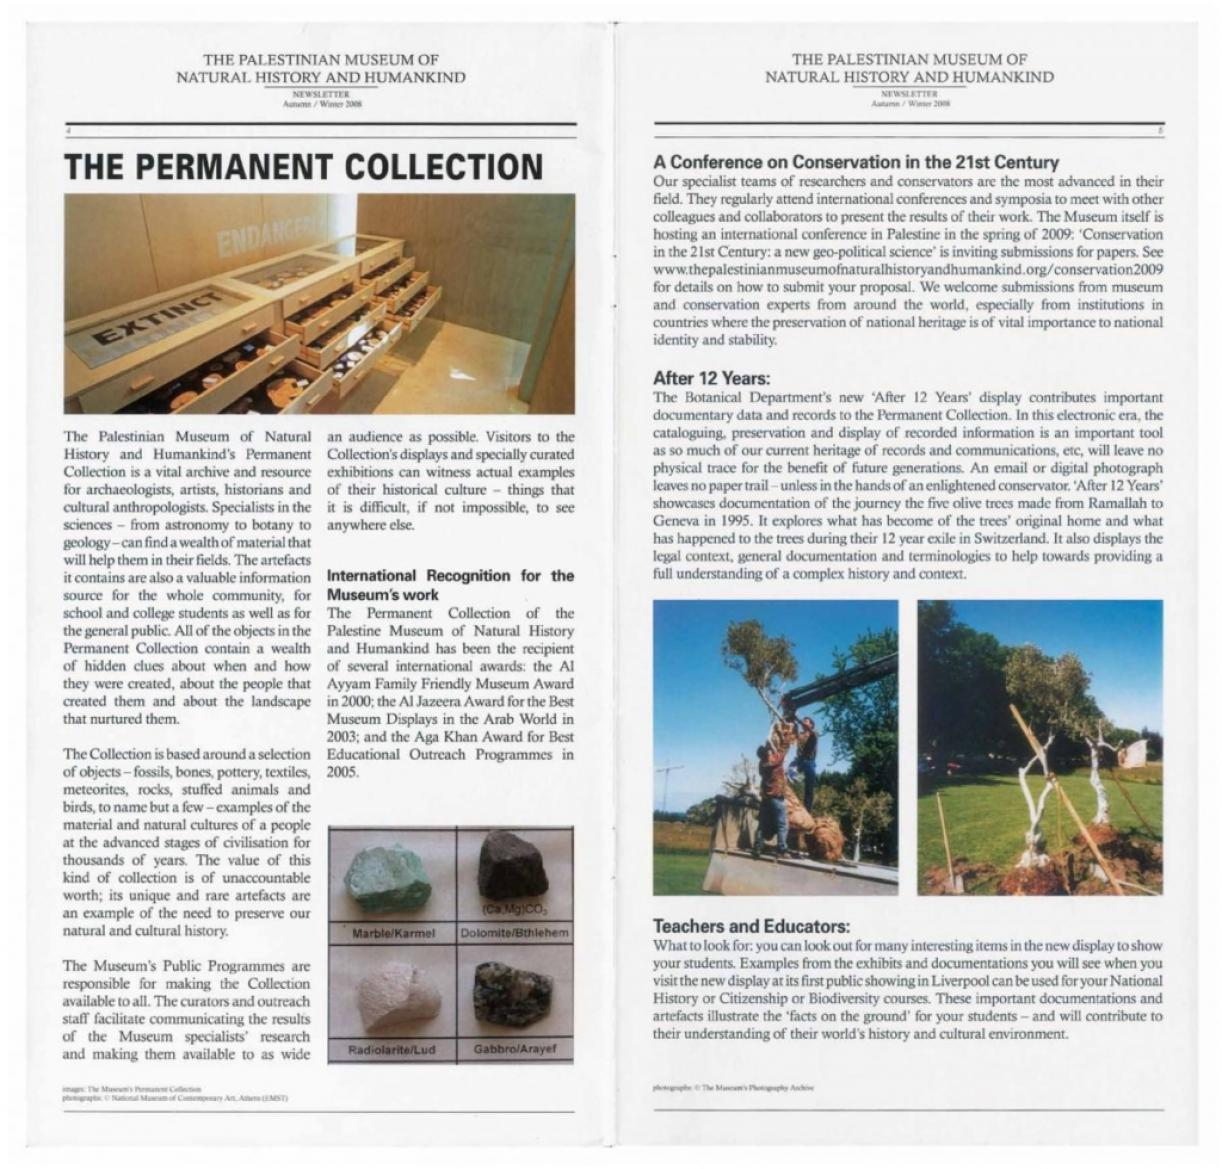 The Palestinian Museum of Natural History and Humankind, Newsletter, Autumn - Winter 2008